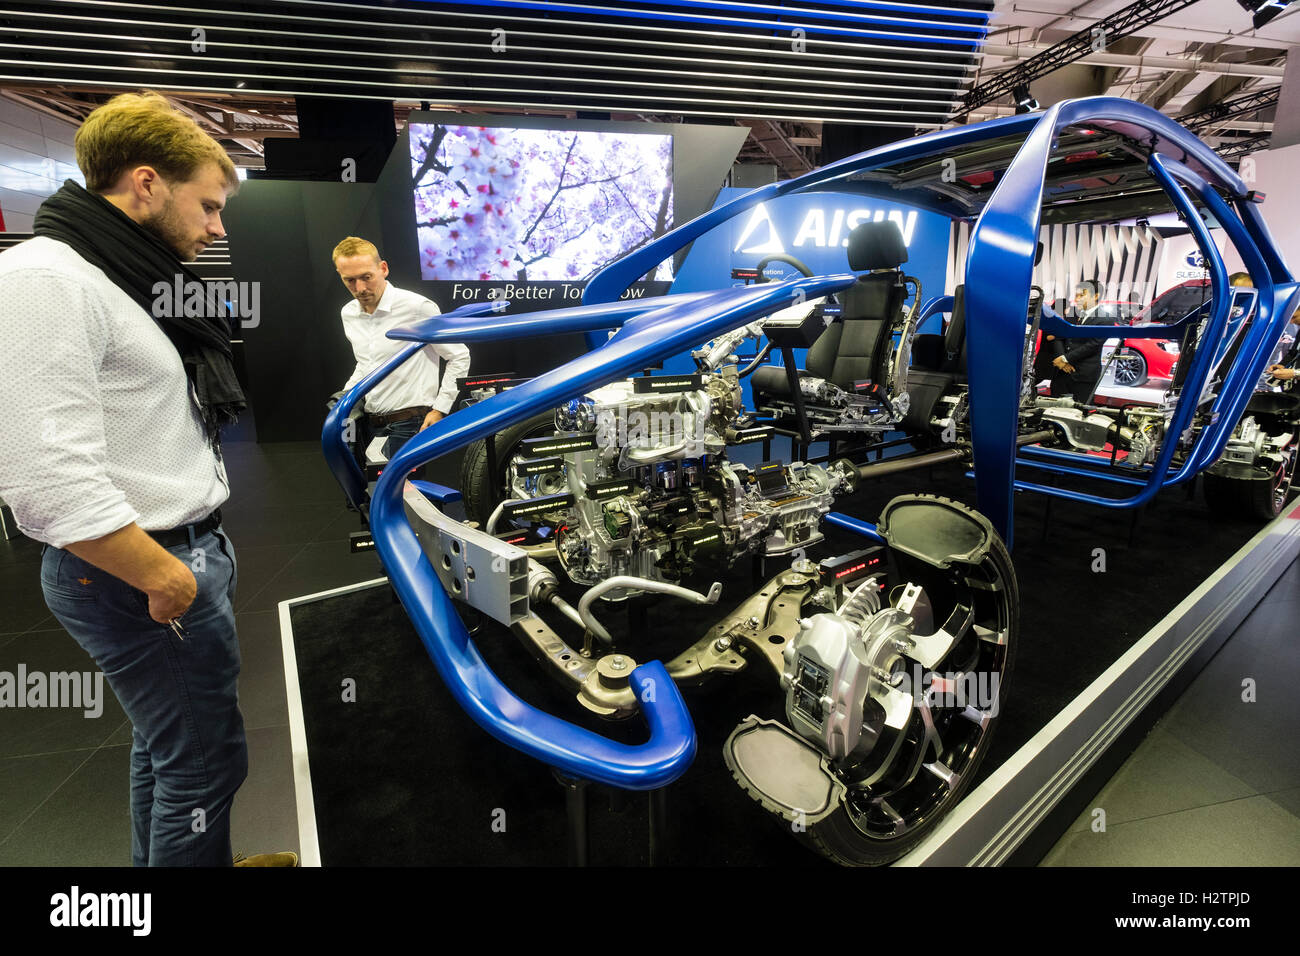 Aisin company displaying their latest car technology at Paris Motor Show 2016 - Stock Image